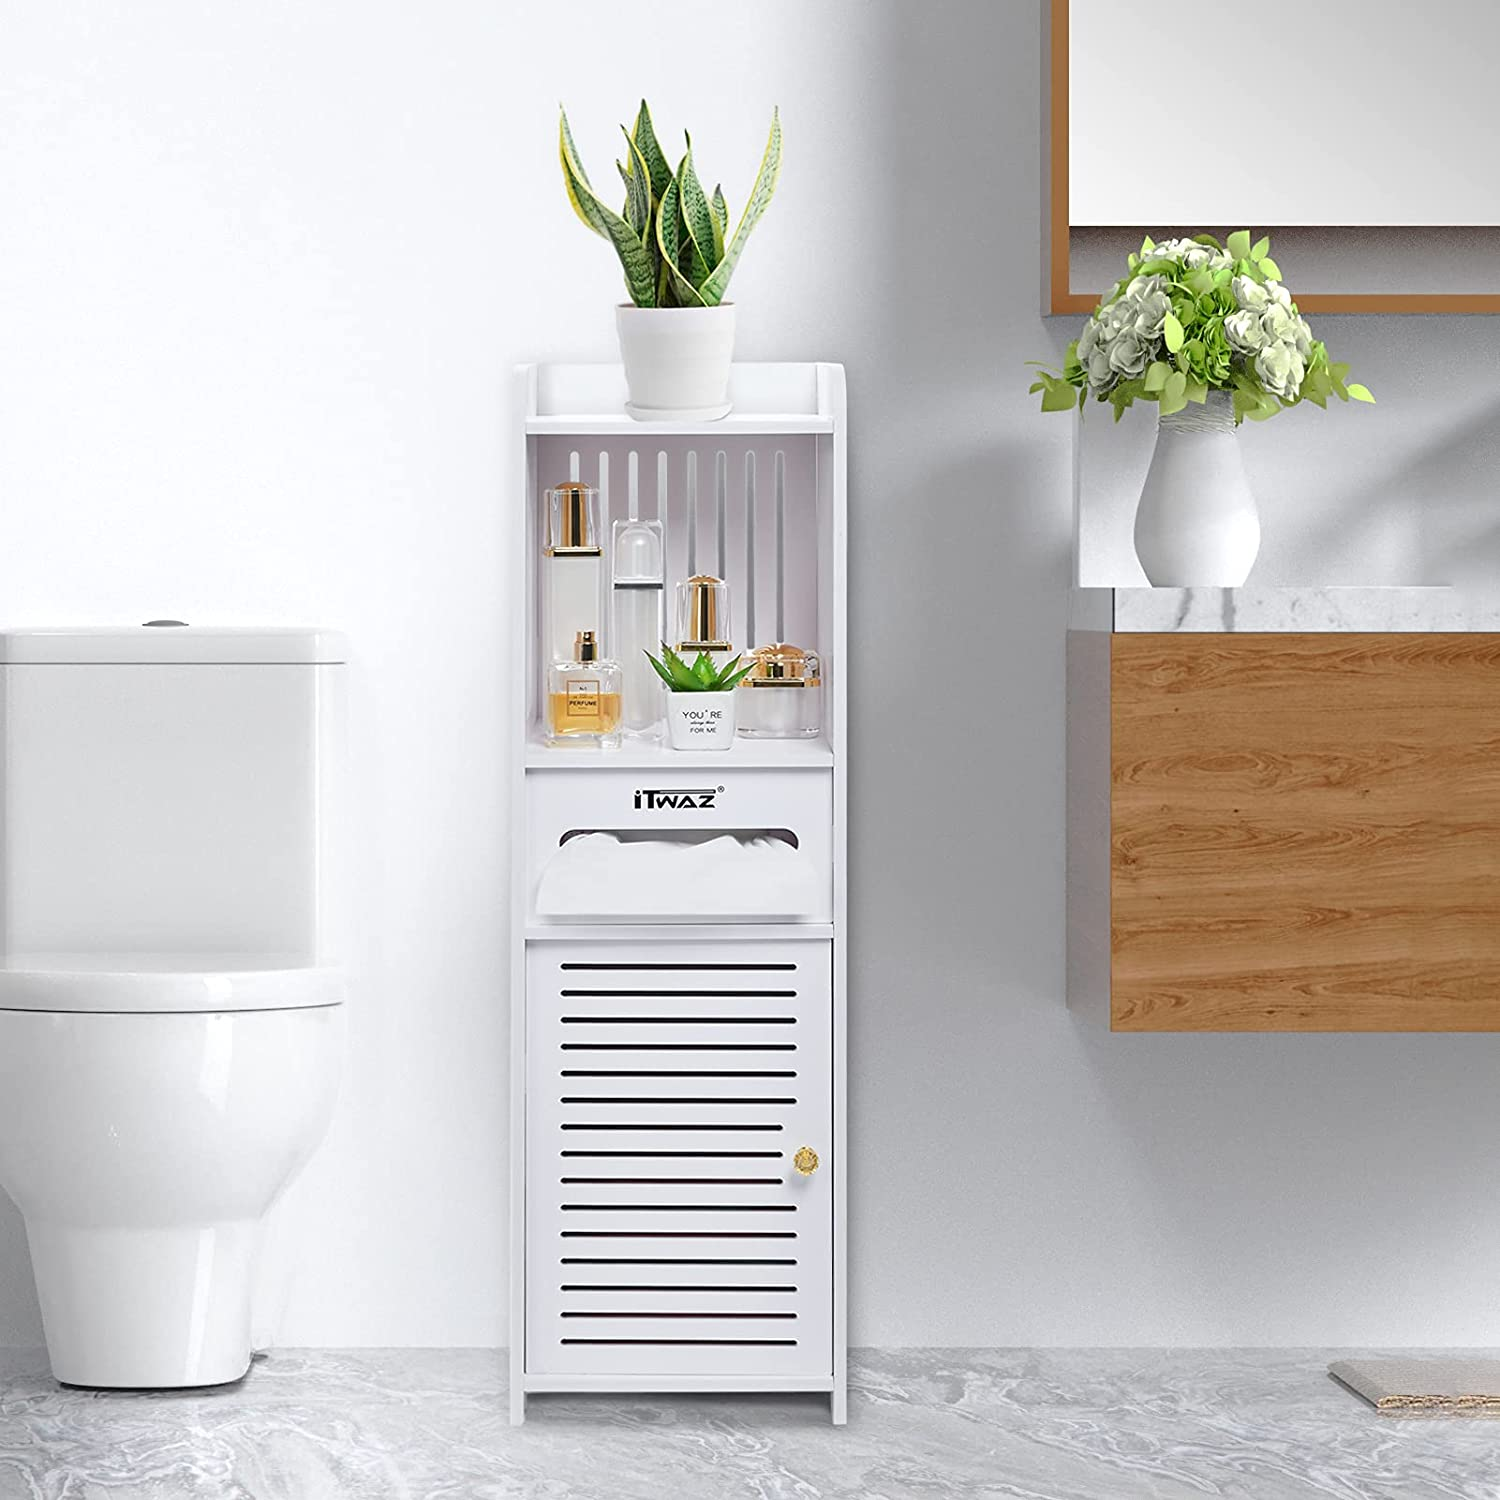 ITWAZ Multipurpose Bathroom Standing Cabinet Single an 2021new shipping free Door with Nippon regular agency